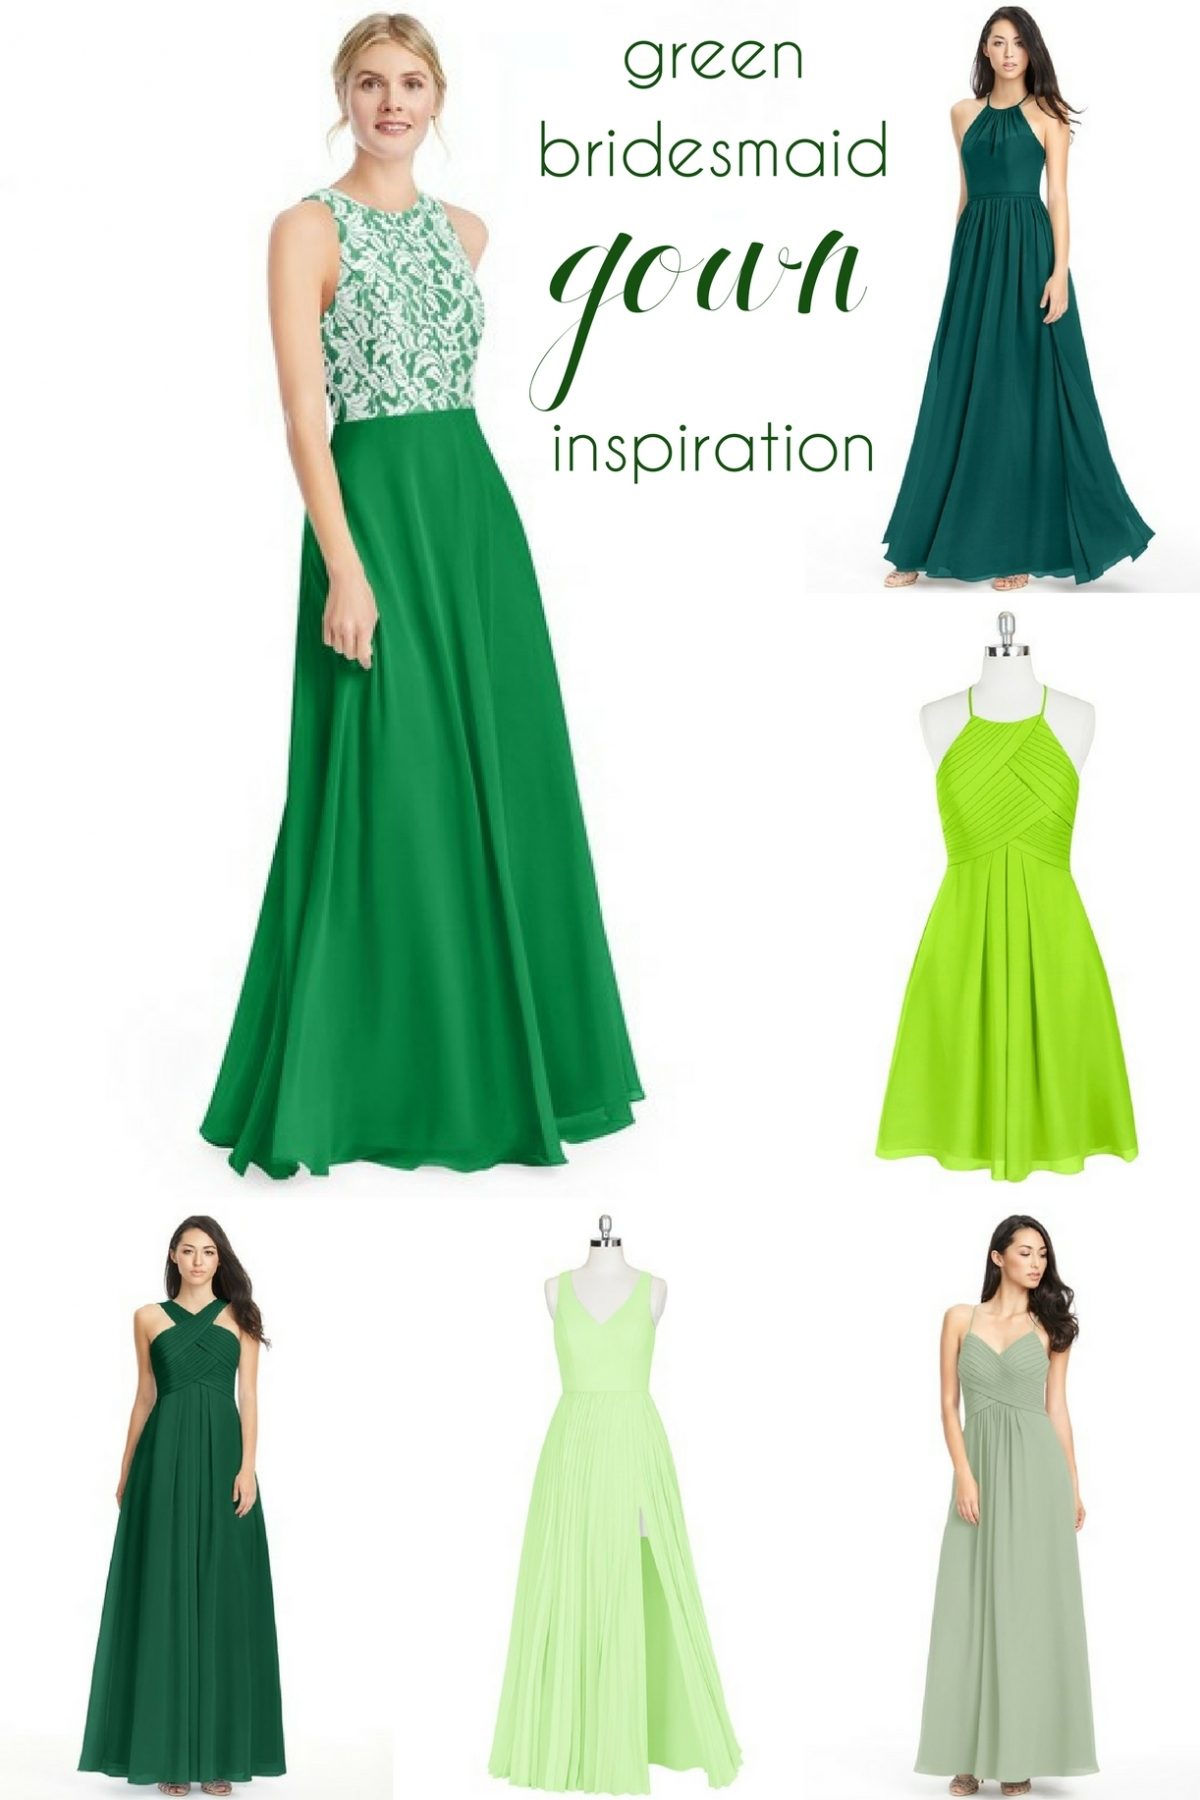 Green bridesmaid dress inspiration hill city bride virginia green bridesmaid dress inspiration hill city bride virginia wedding blog ombrellifo Images